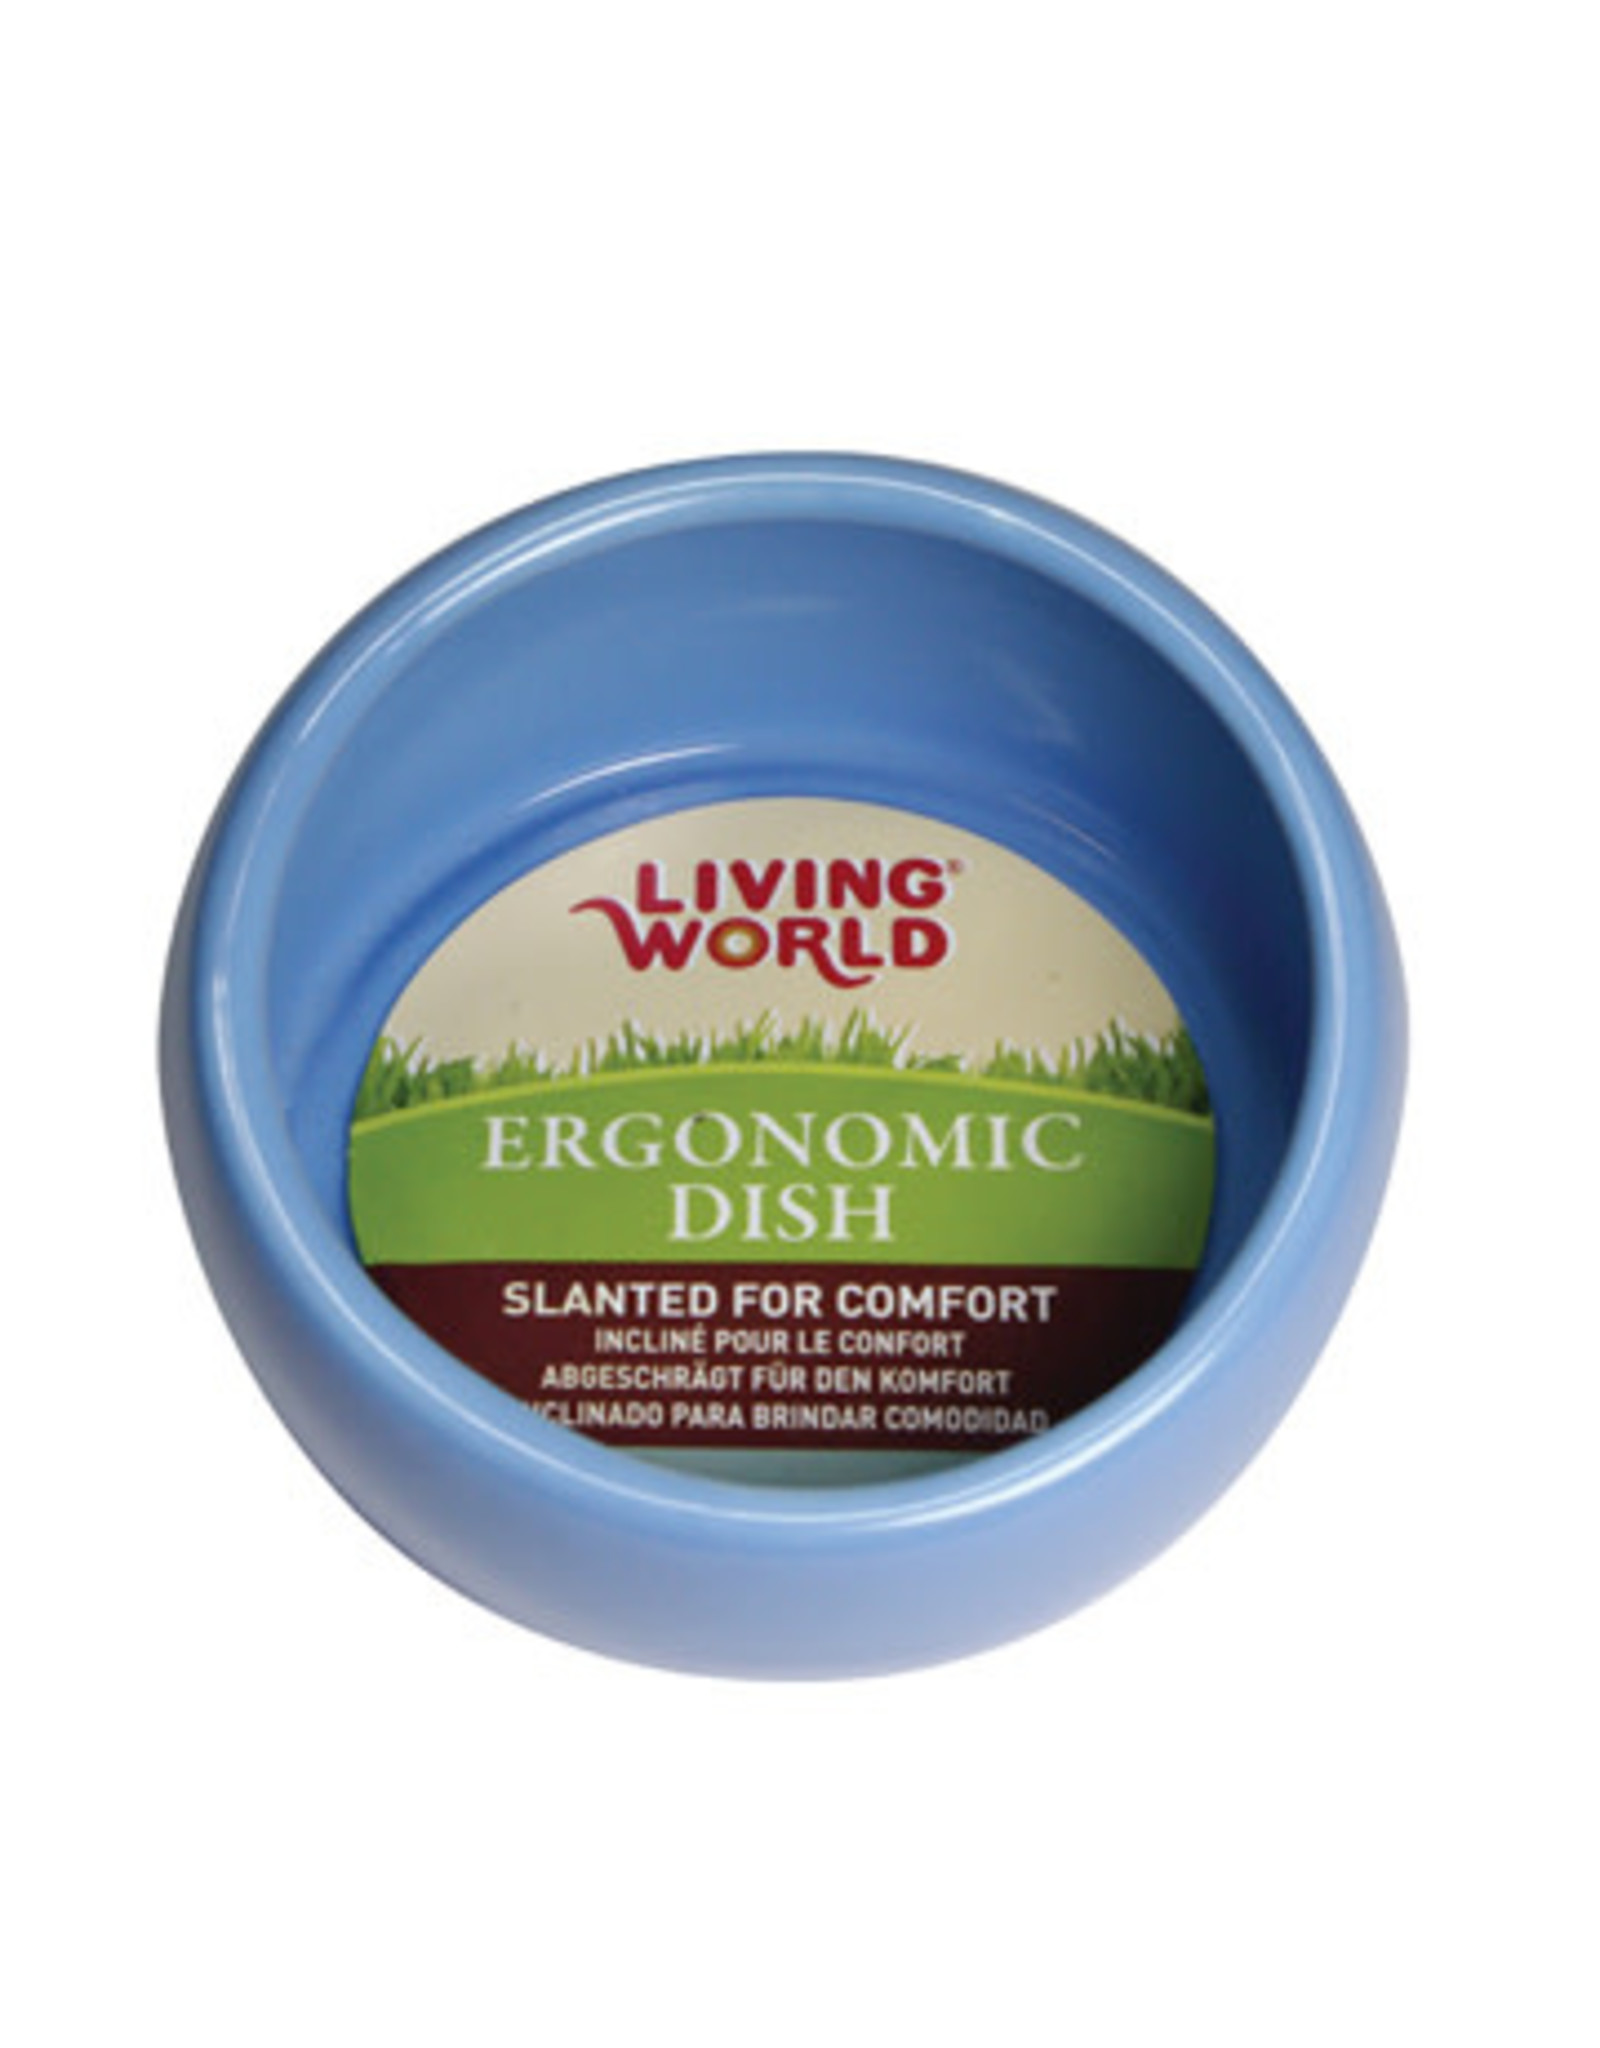 Living World Ergonomic Dish - Large - 420 mL (14.78 oz) - Blue/Ceramic